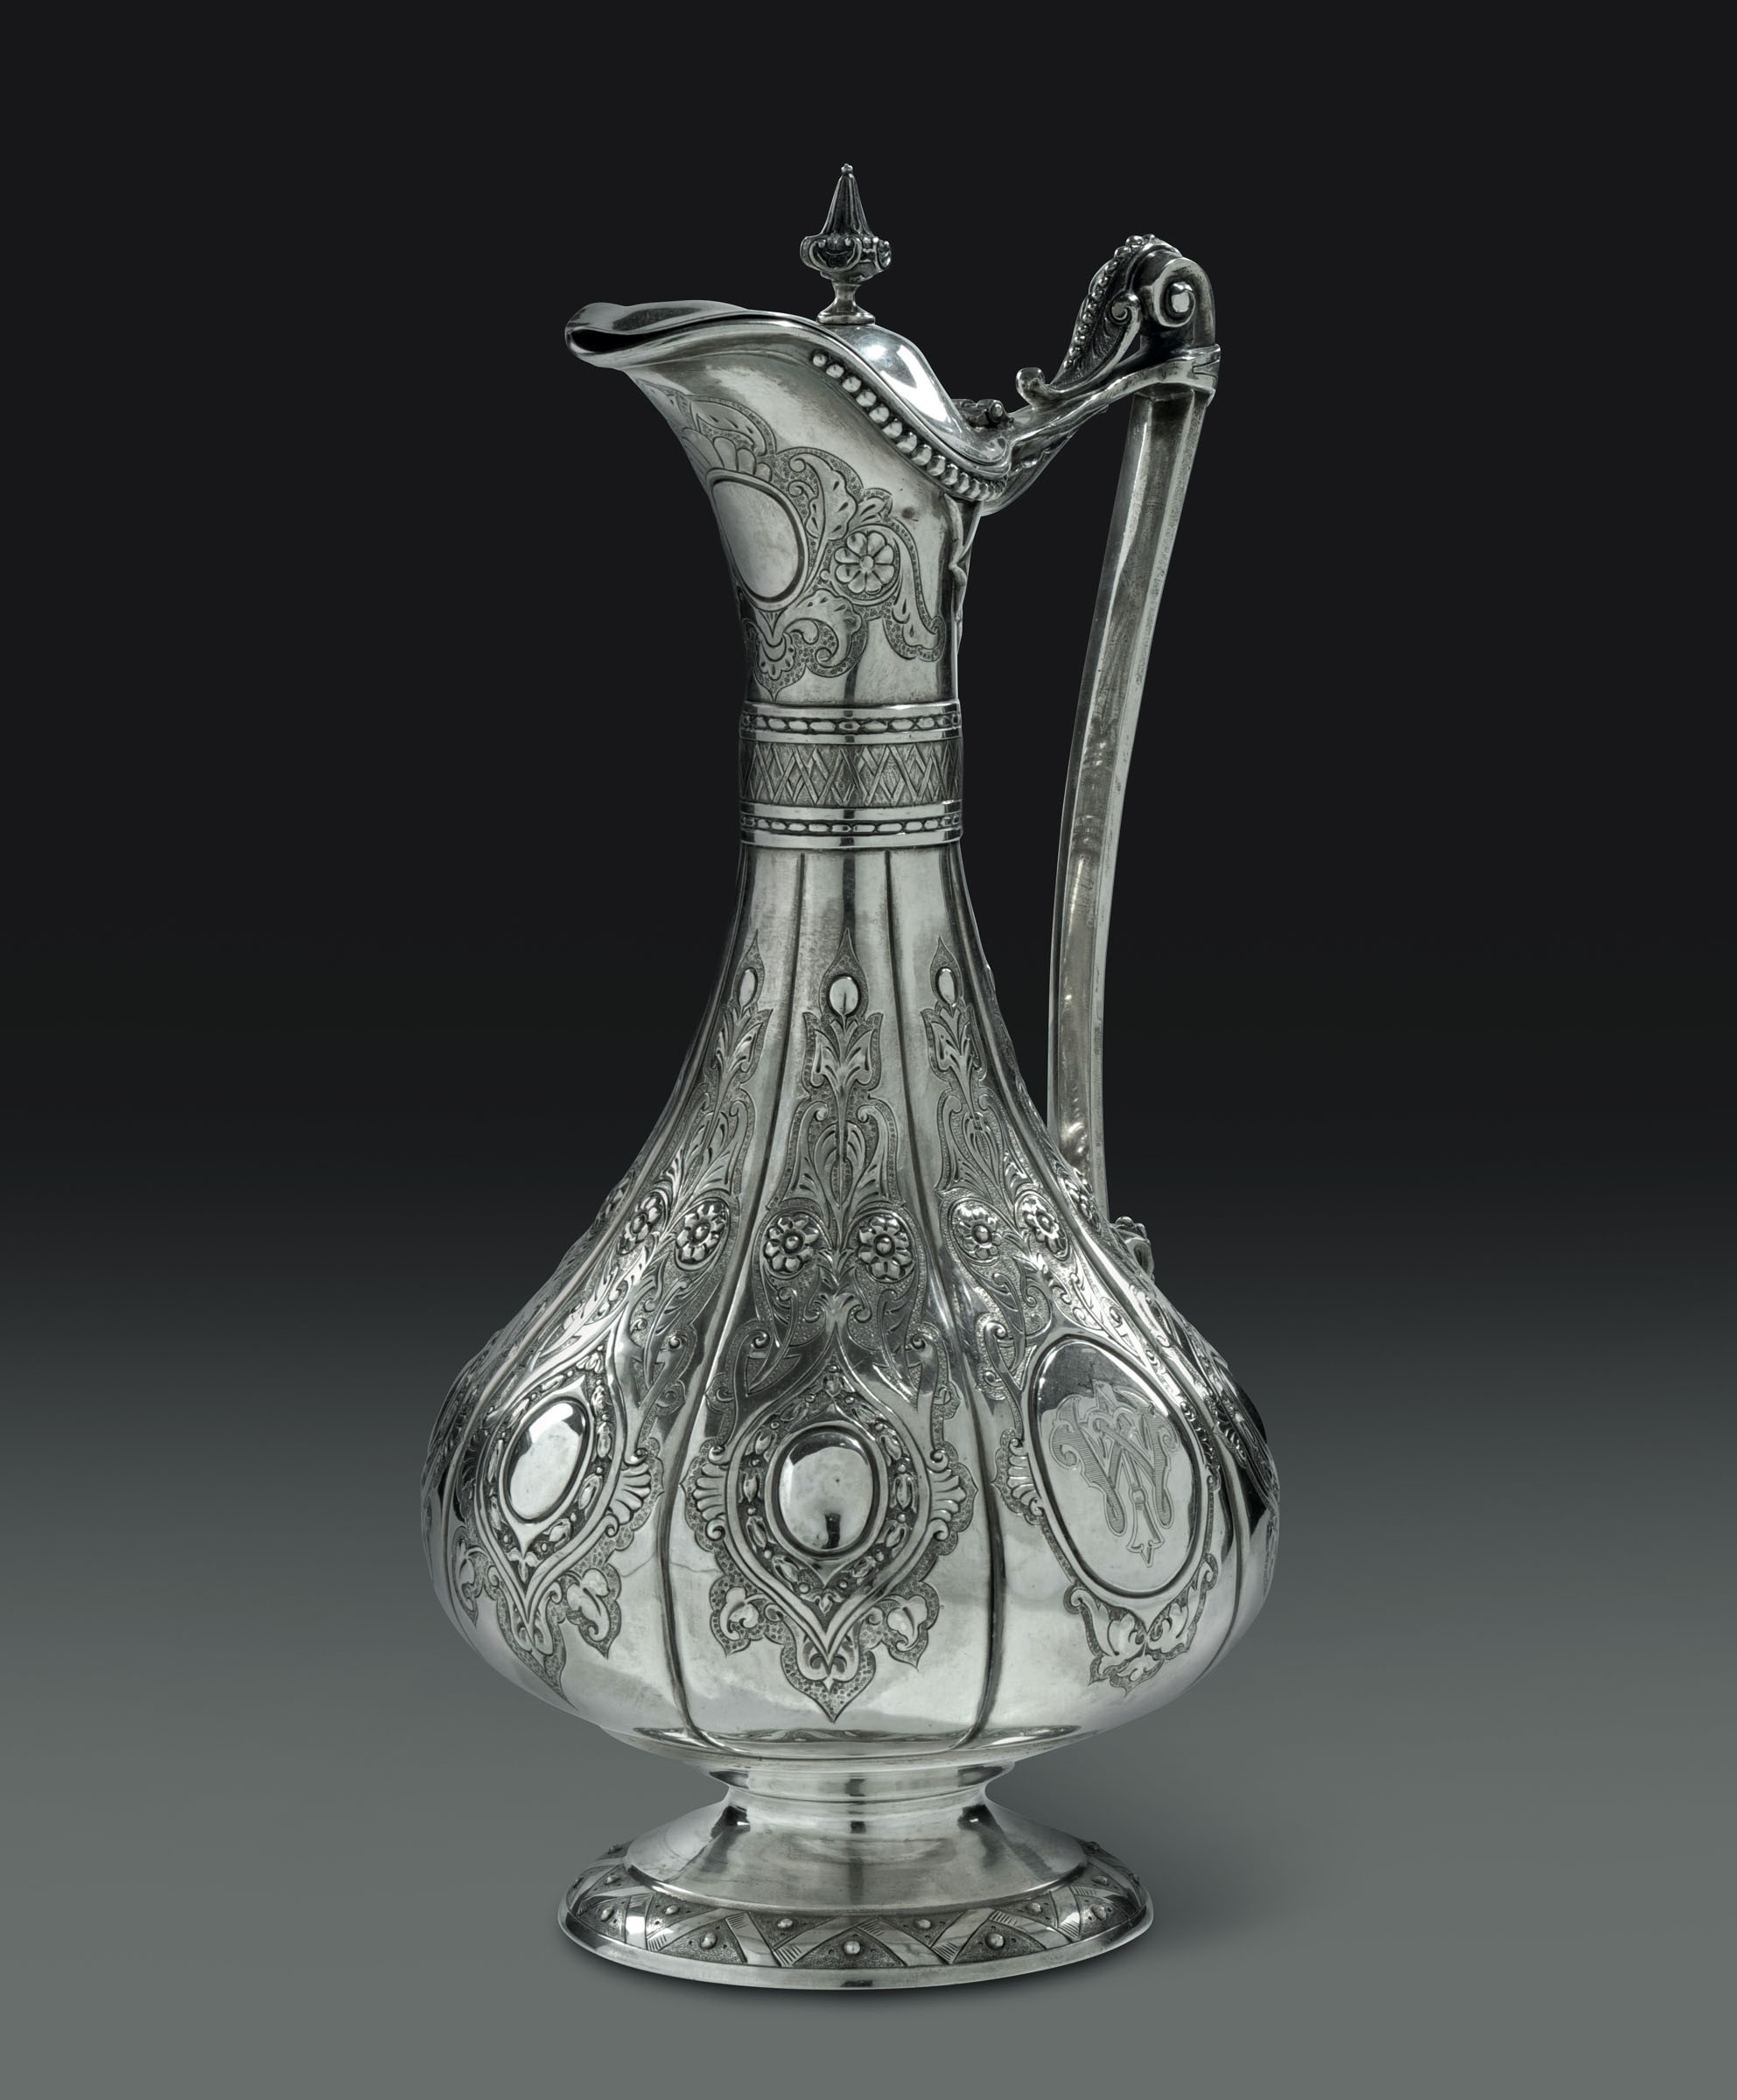 Lot 49 - A pitcher in embossed and chiselled silver, London 1881 ca. - - altezza cm 35, gr. [...]